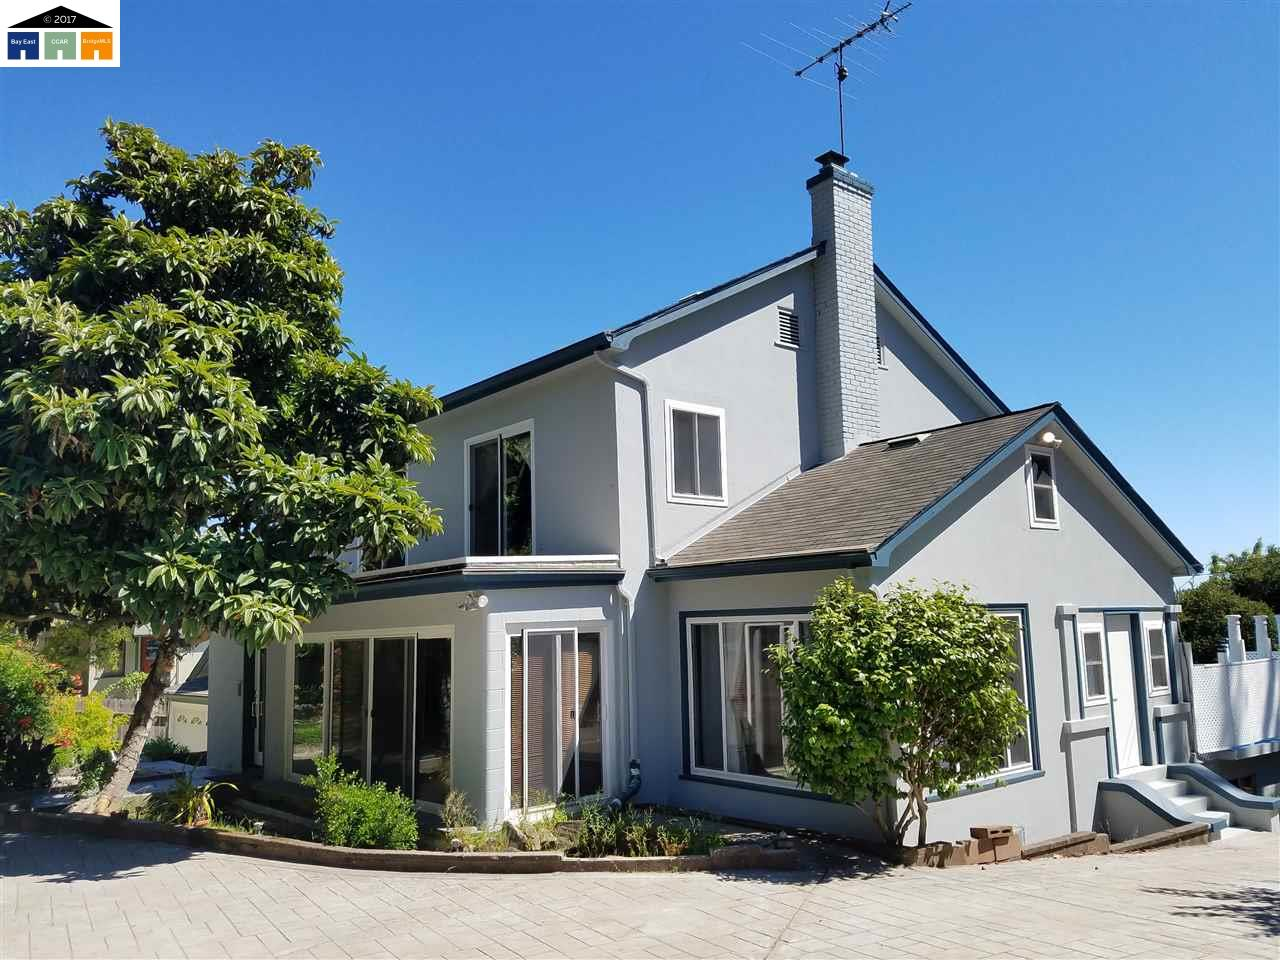 Single Family Home for Sale at 3026 Guido Street 3026 Guido Street Oakland, California 94602 United States